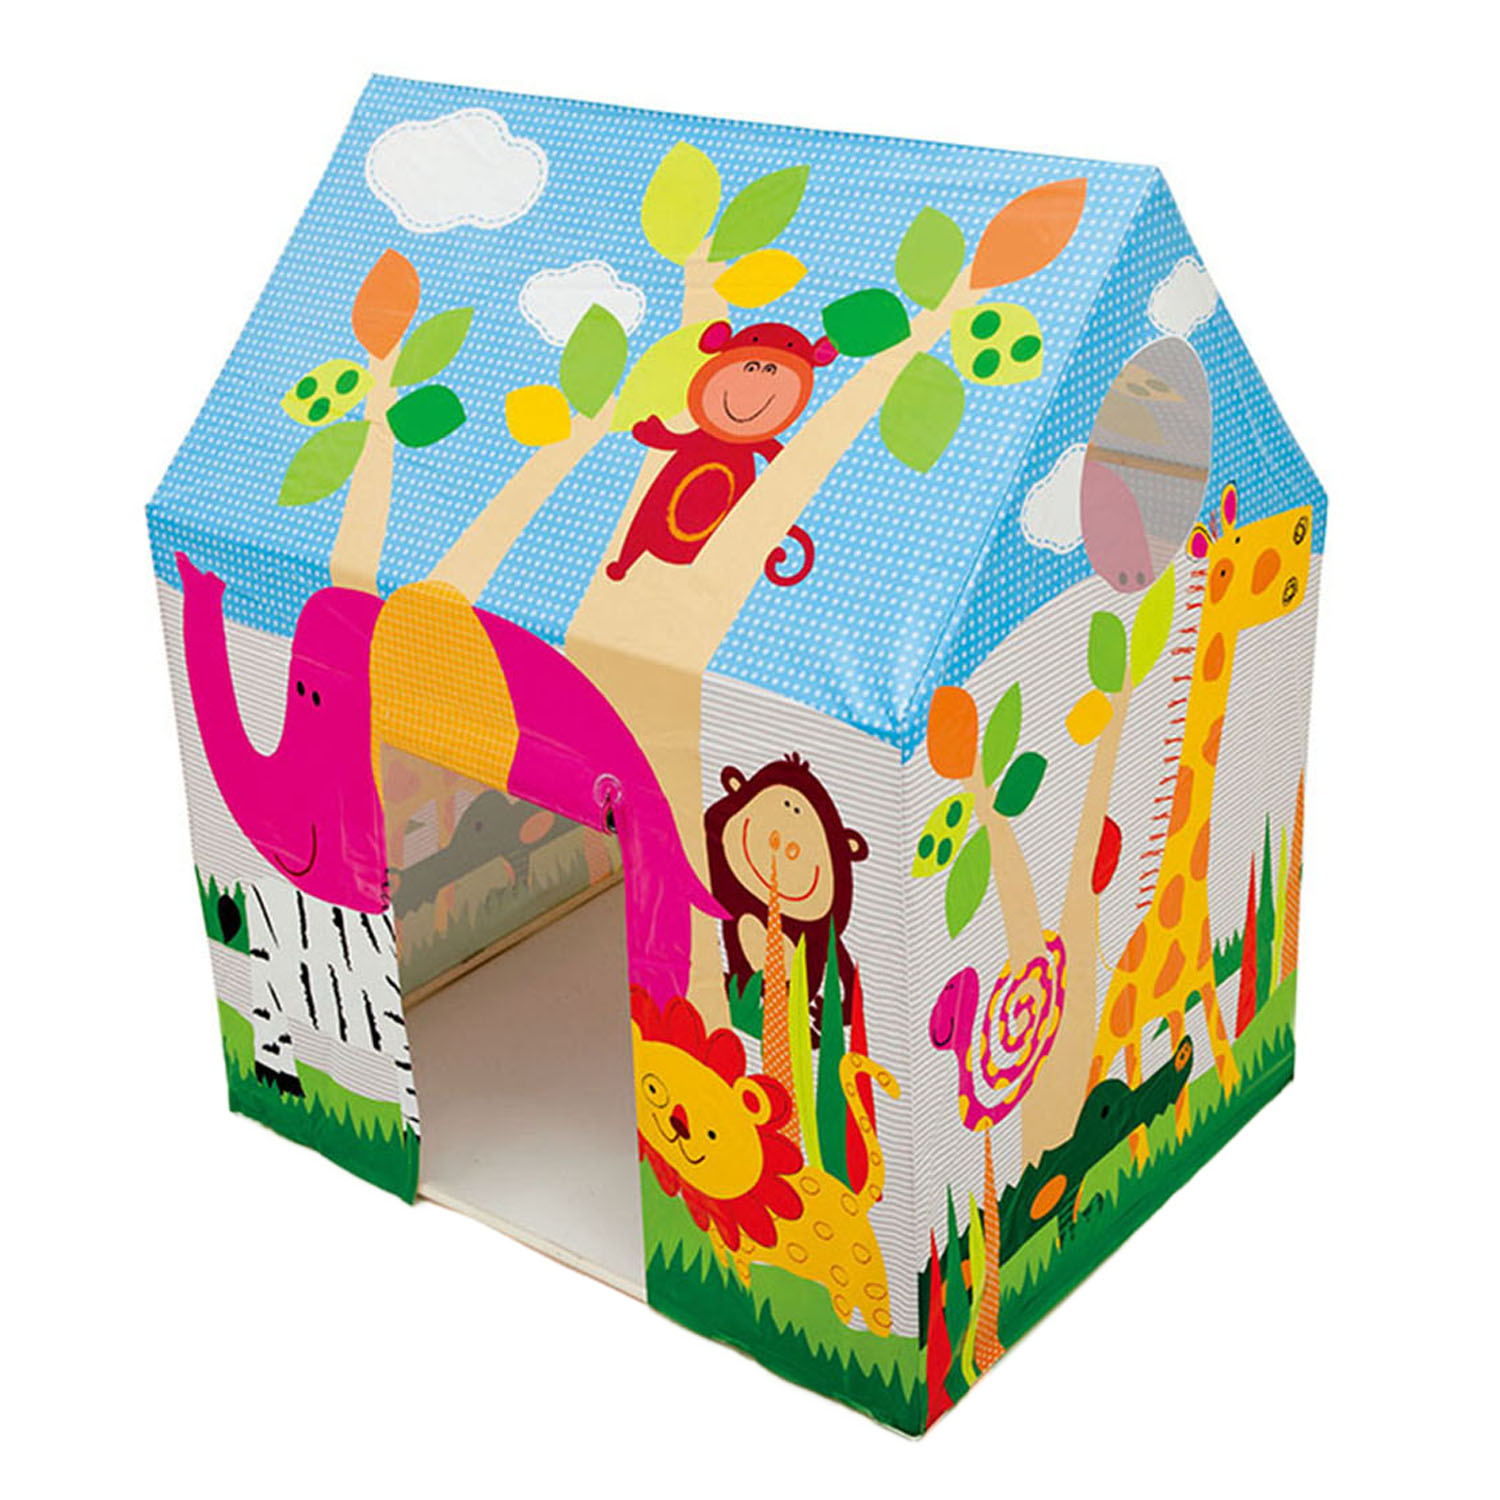 Intex 45642NP Play House